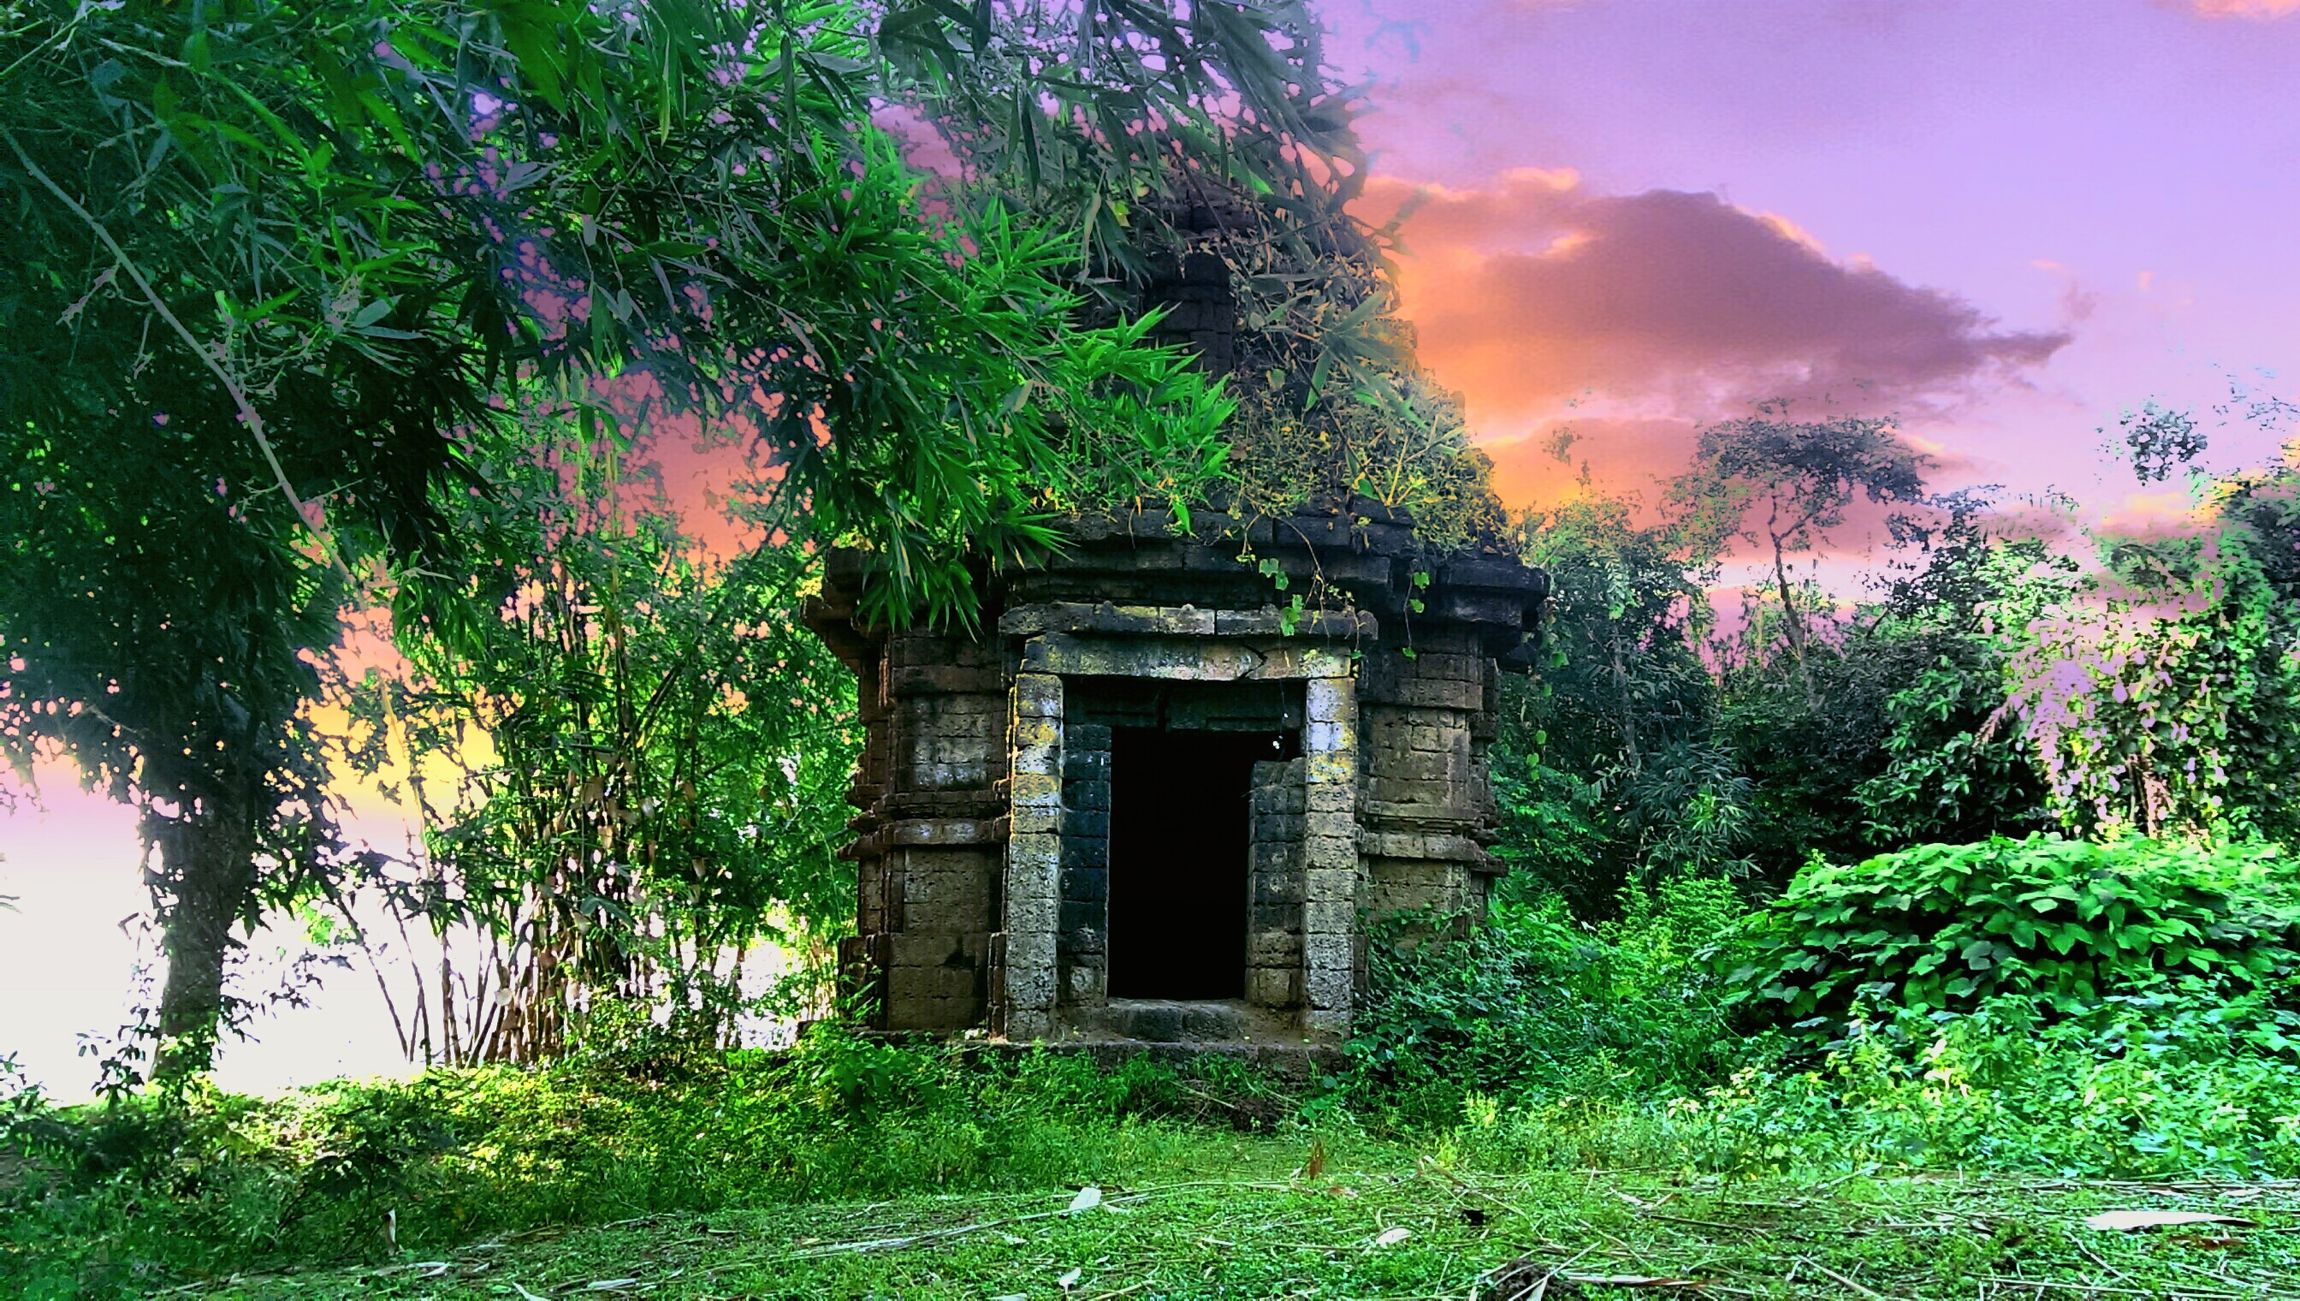 Untold Stories Its A God Temple and It has its Own True Stories...Capture by PranoyBanerjee